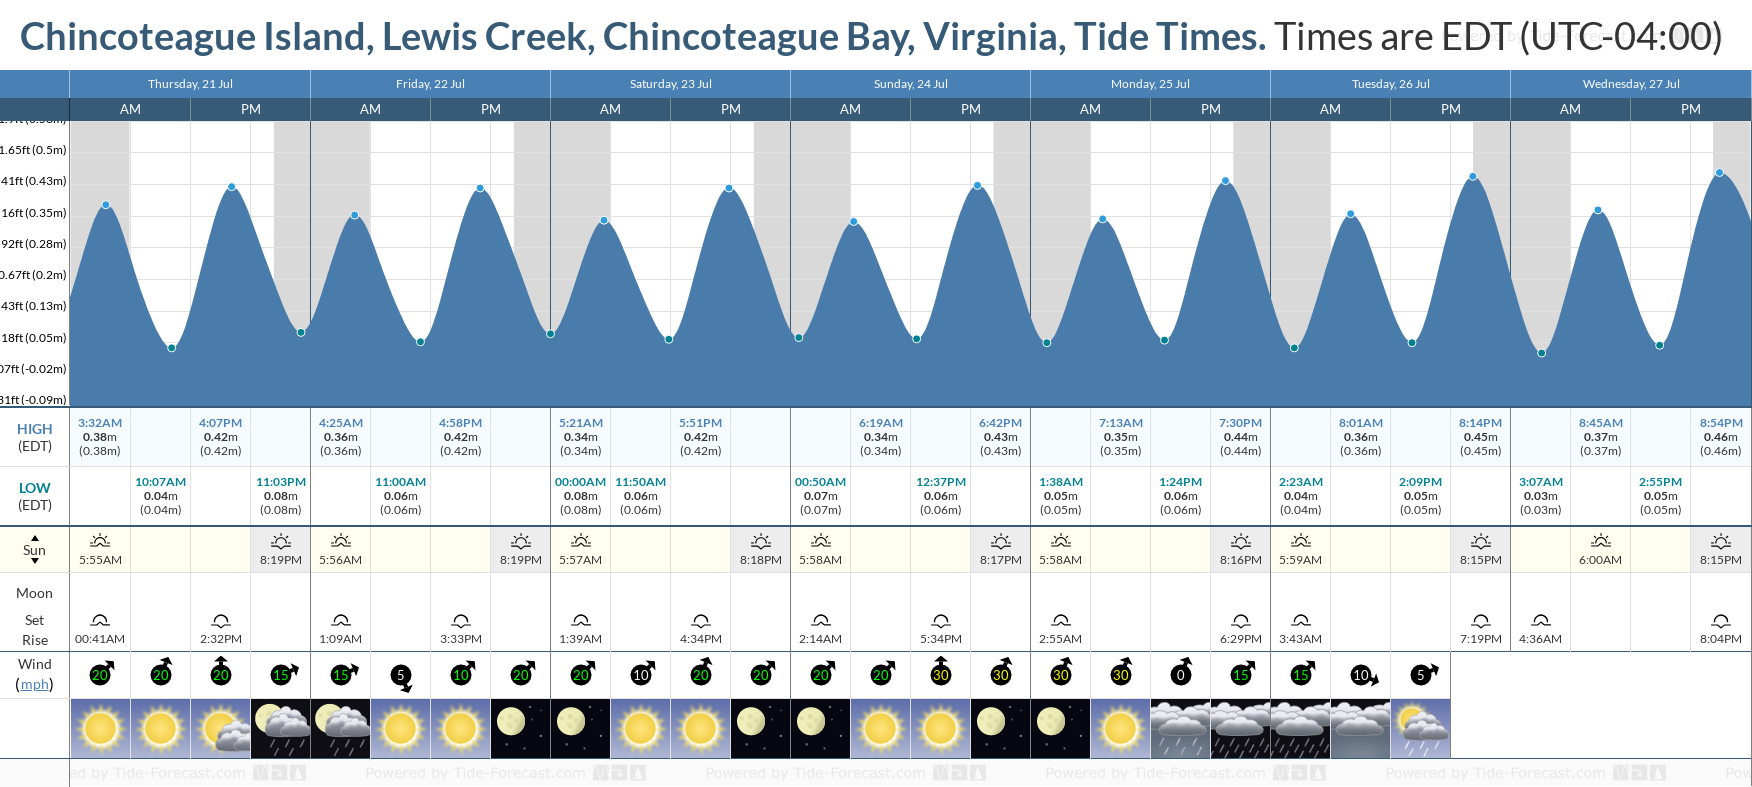 Chincoteague Island, Lewis Creek, Chincoteague Bay, Virginia Tide Chart including high and low tide tide times for the next 7 days